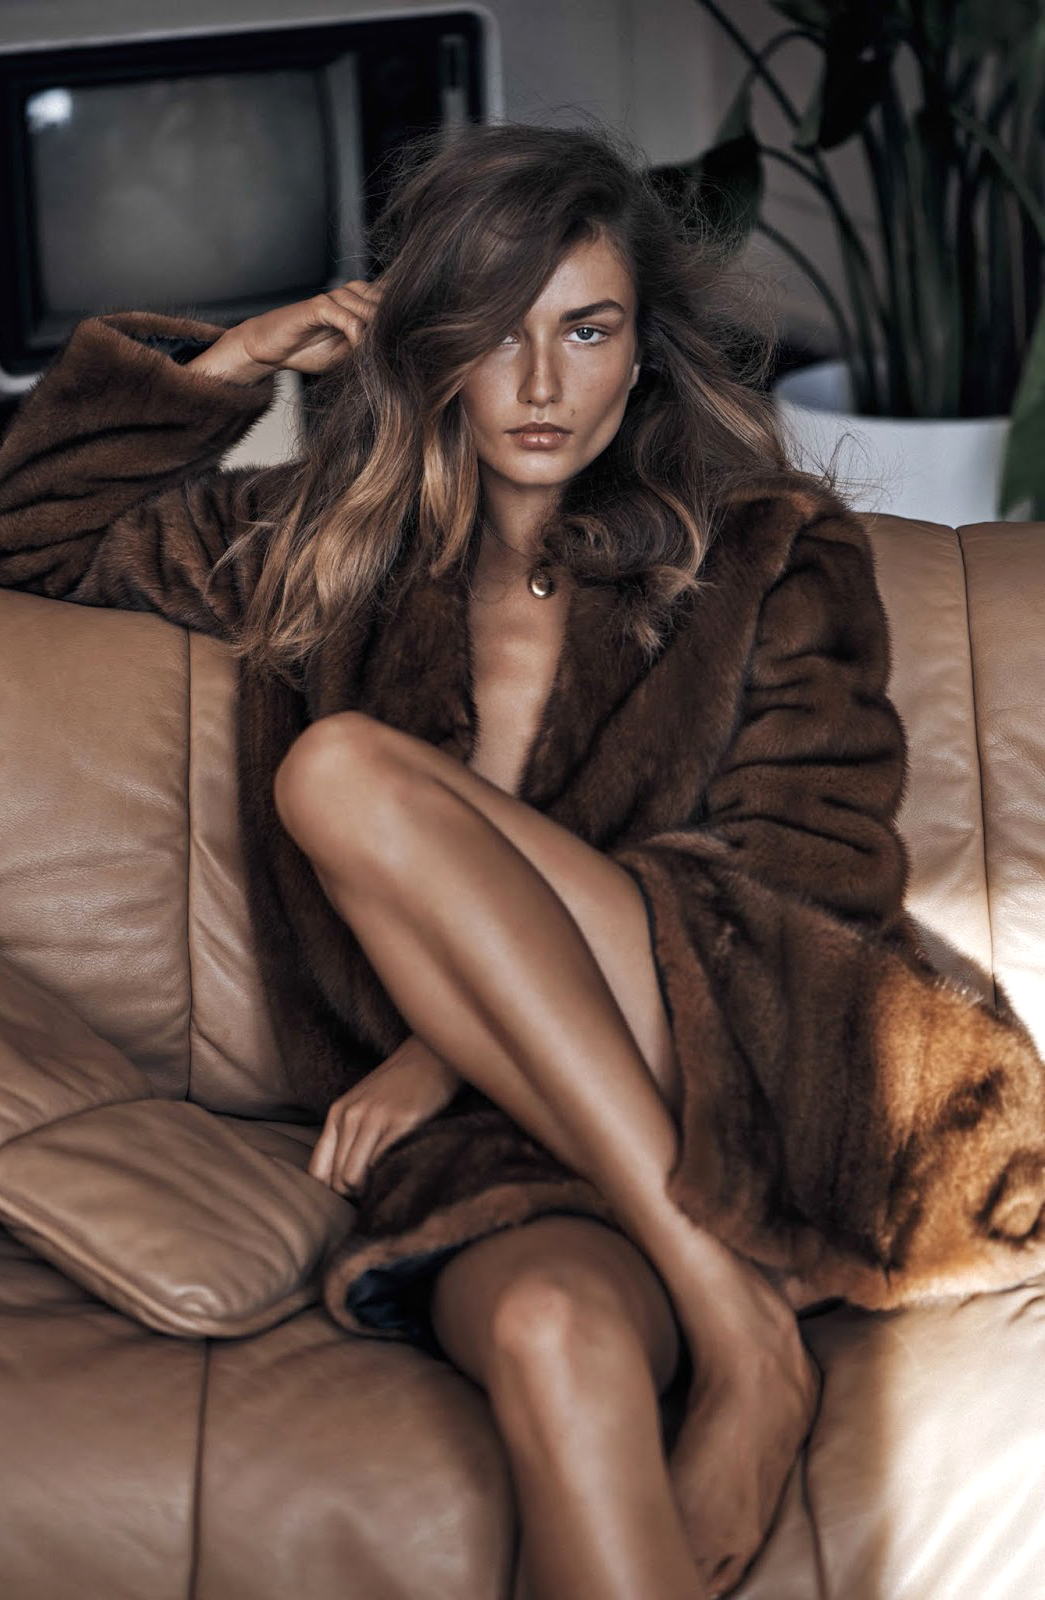 Best Fall/Winter 2015 coats - camel, animal print, military, leather, suede, fur and more / Vogue China November 2015 (photography: Lachlan Bailey, styling: Clare Richardson, model: Andreea Diaconu) / via www.fashionedbylove.co.uk